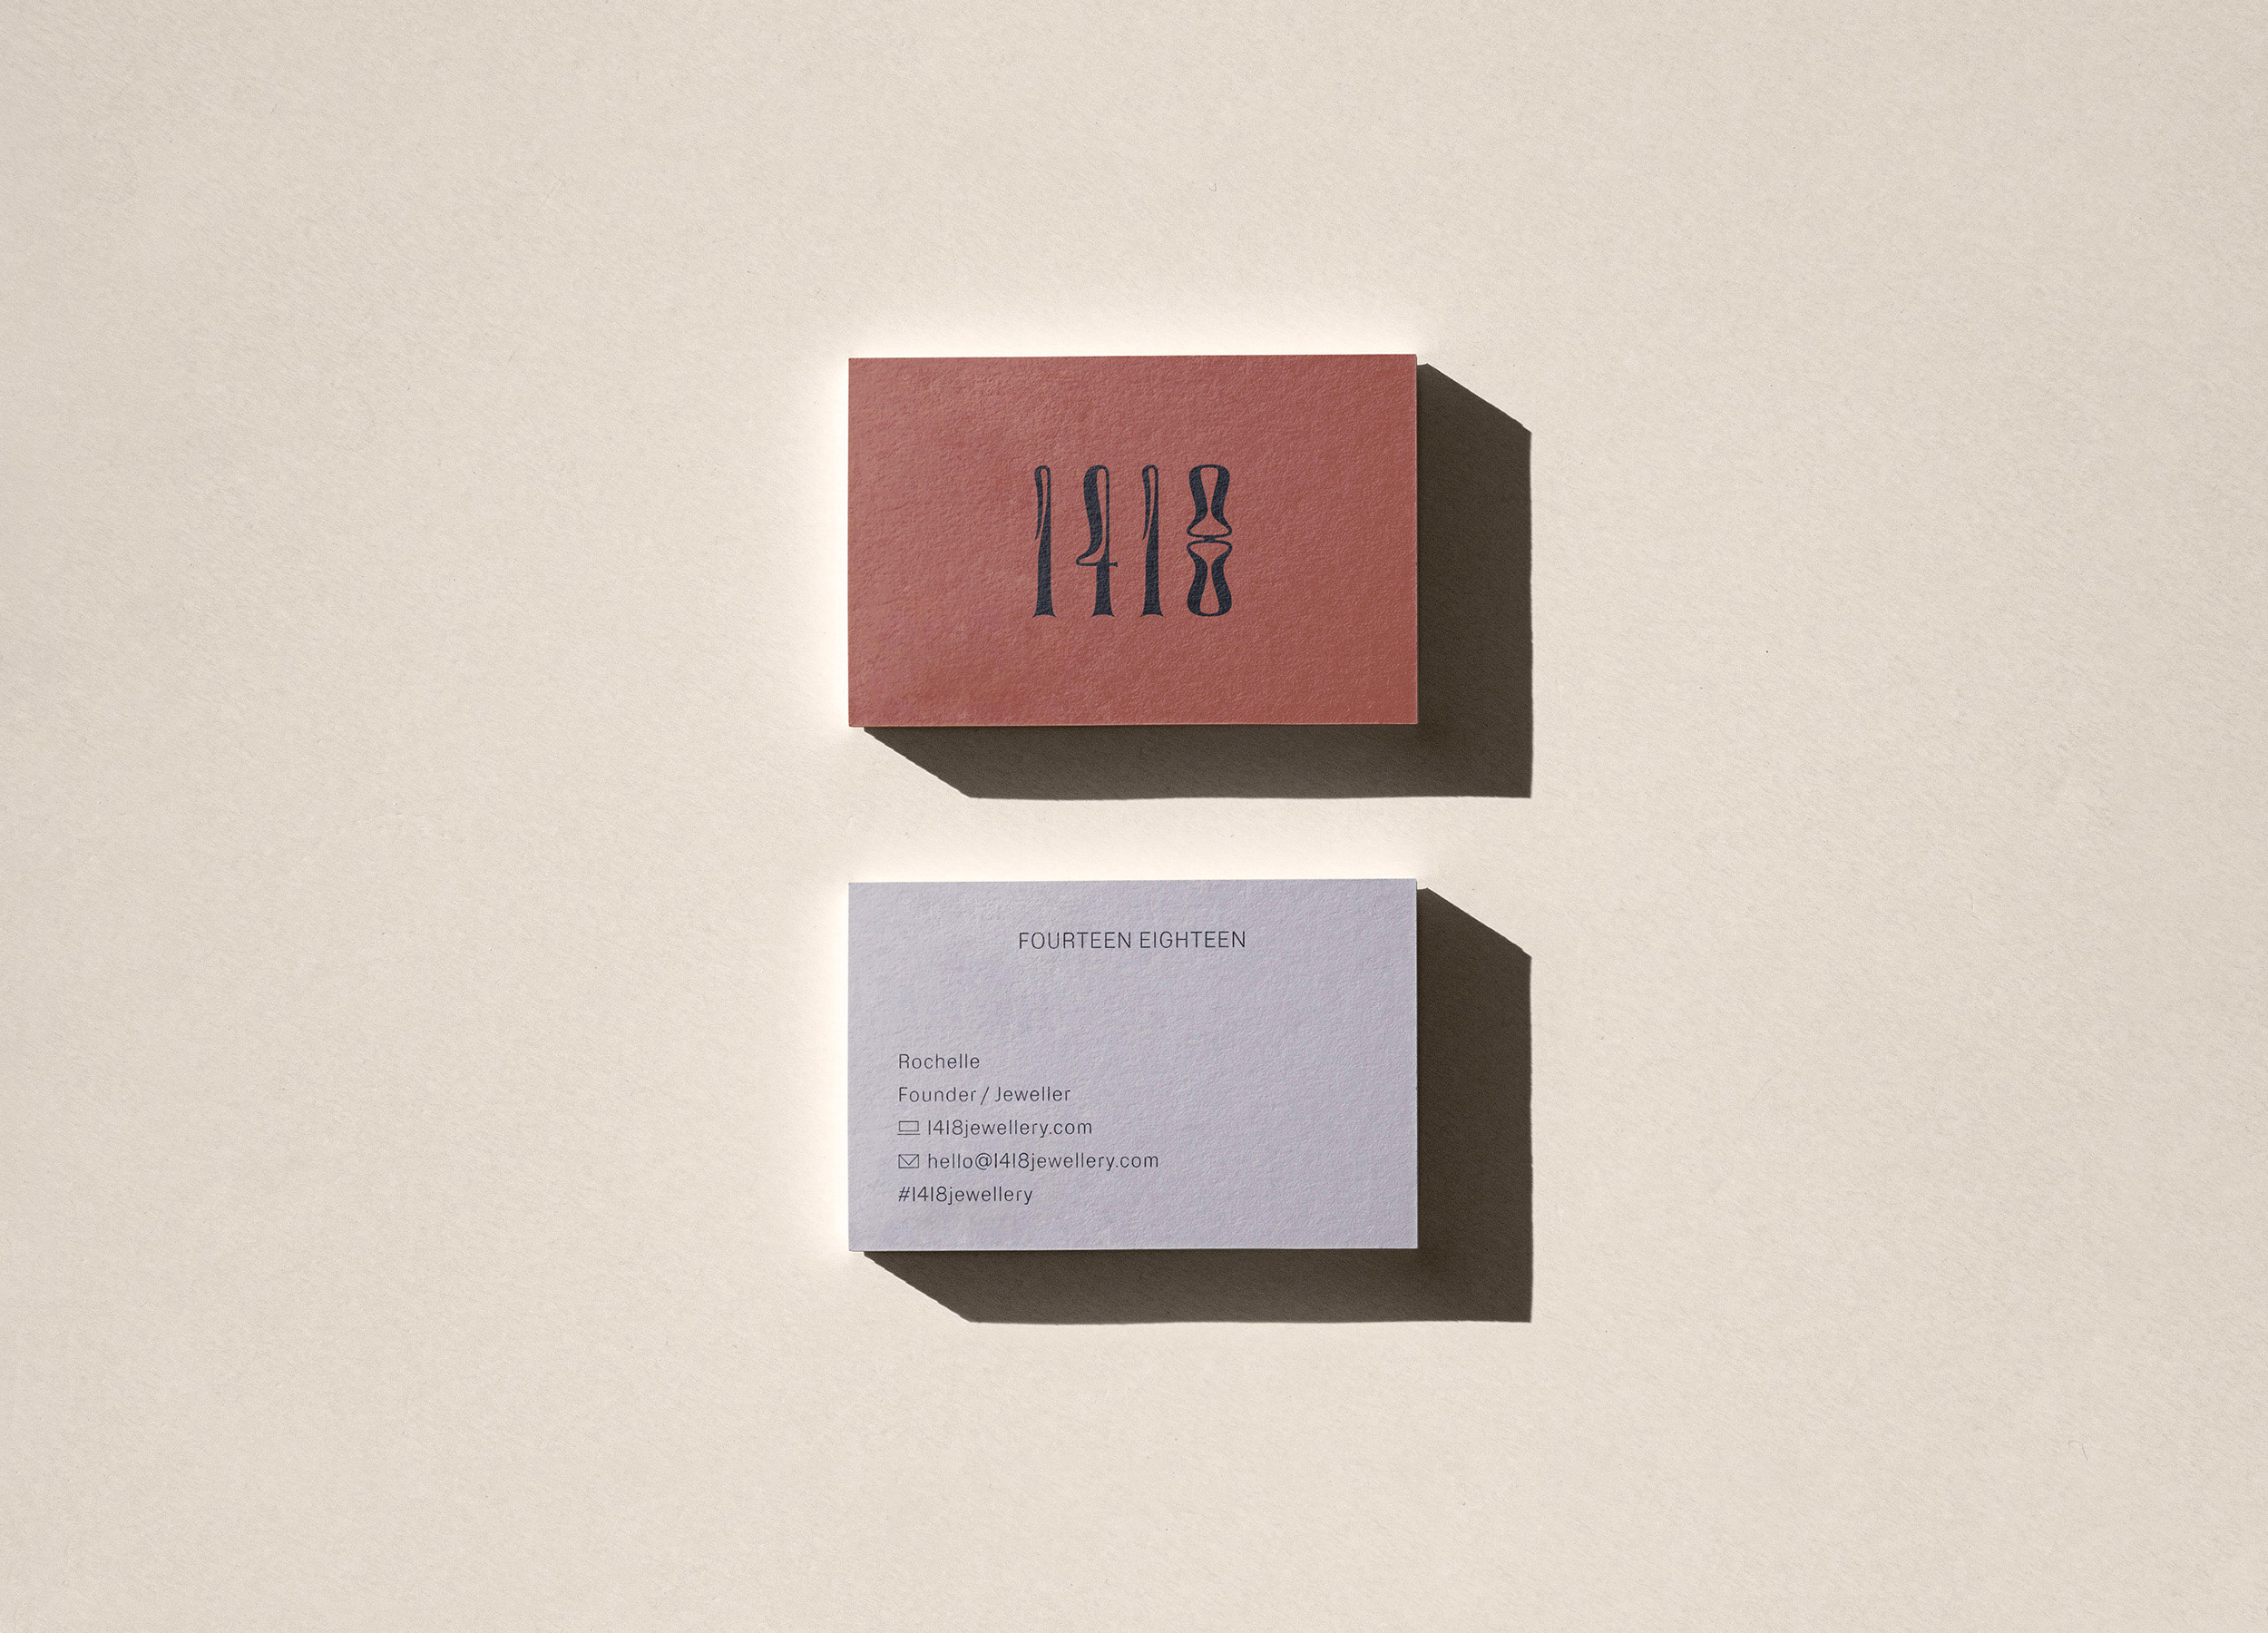 Business card design for 1418 Jewellery